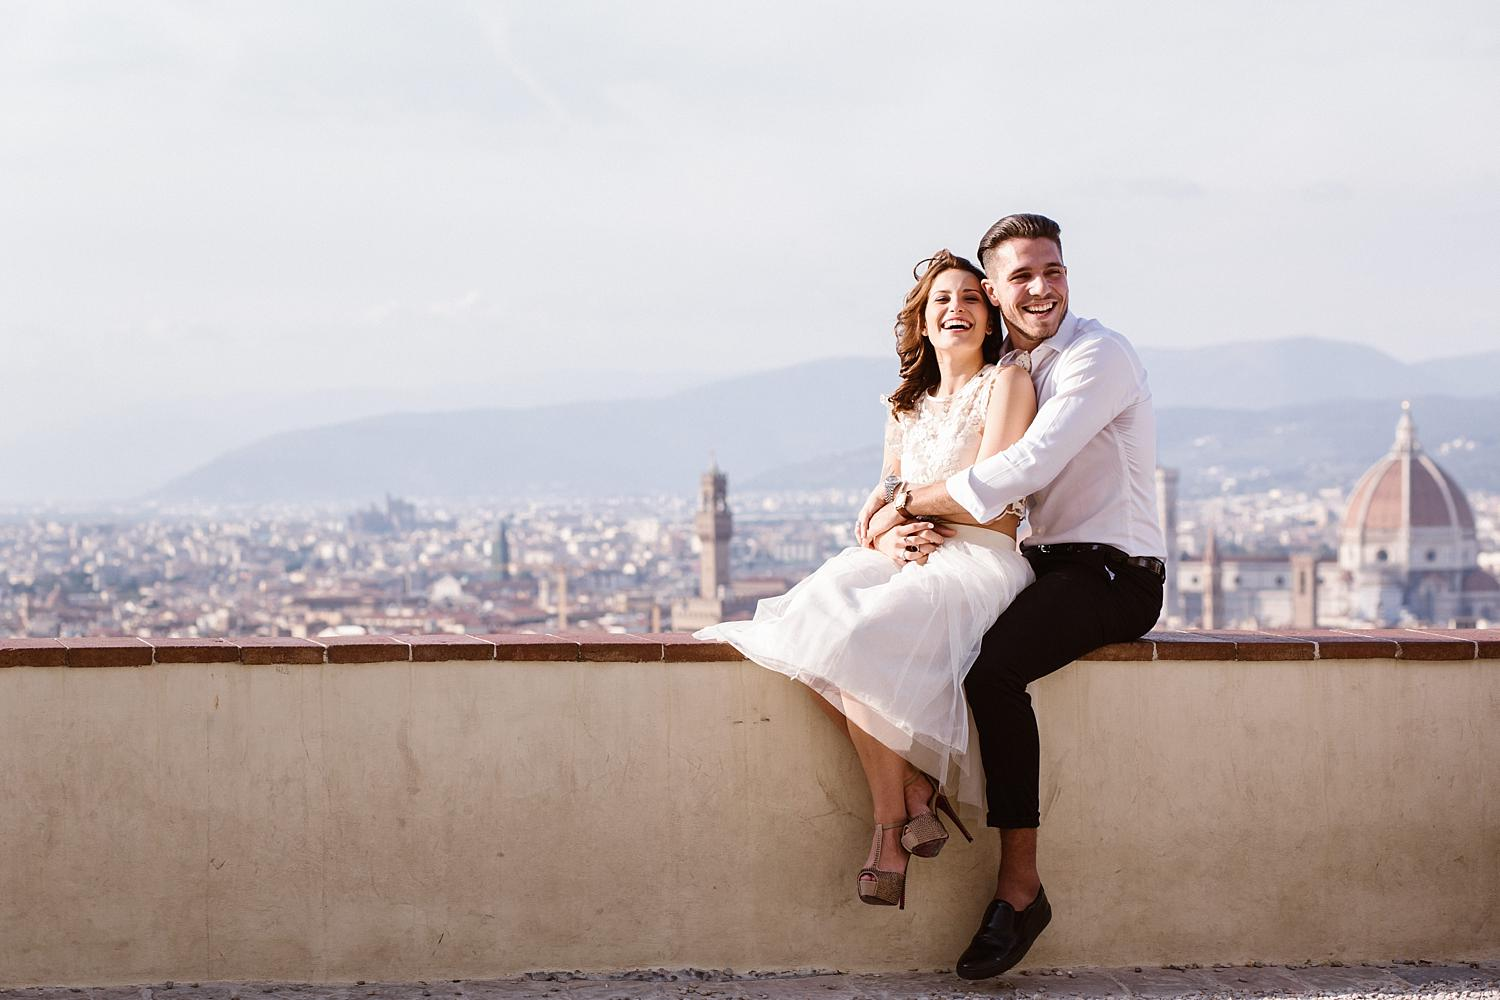 weddingphotographer florence 36 - Maddalena & Arturo - A Chic Anniversary Session in Florence